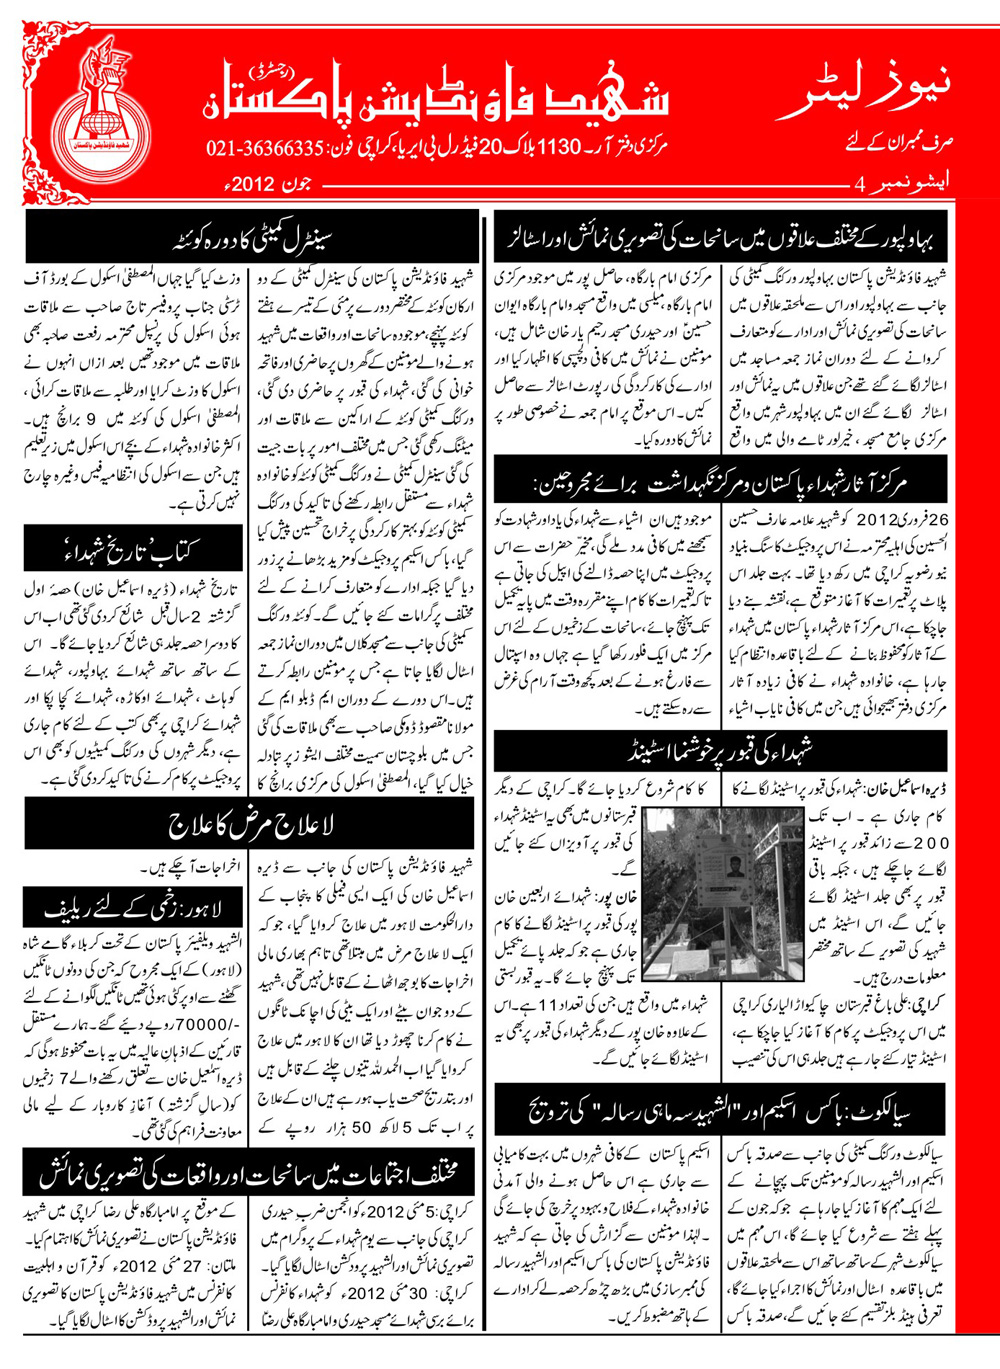 Al-Shaheed News Paper Jun 2012